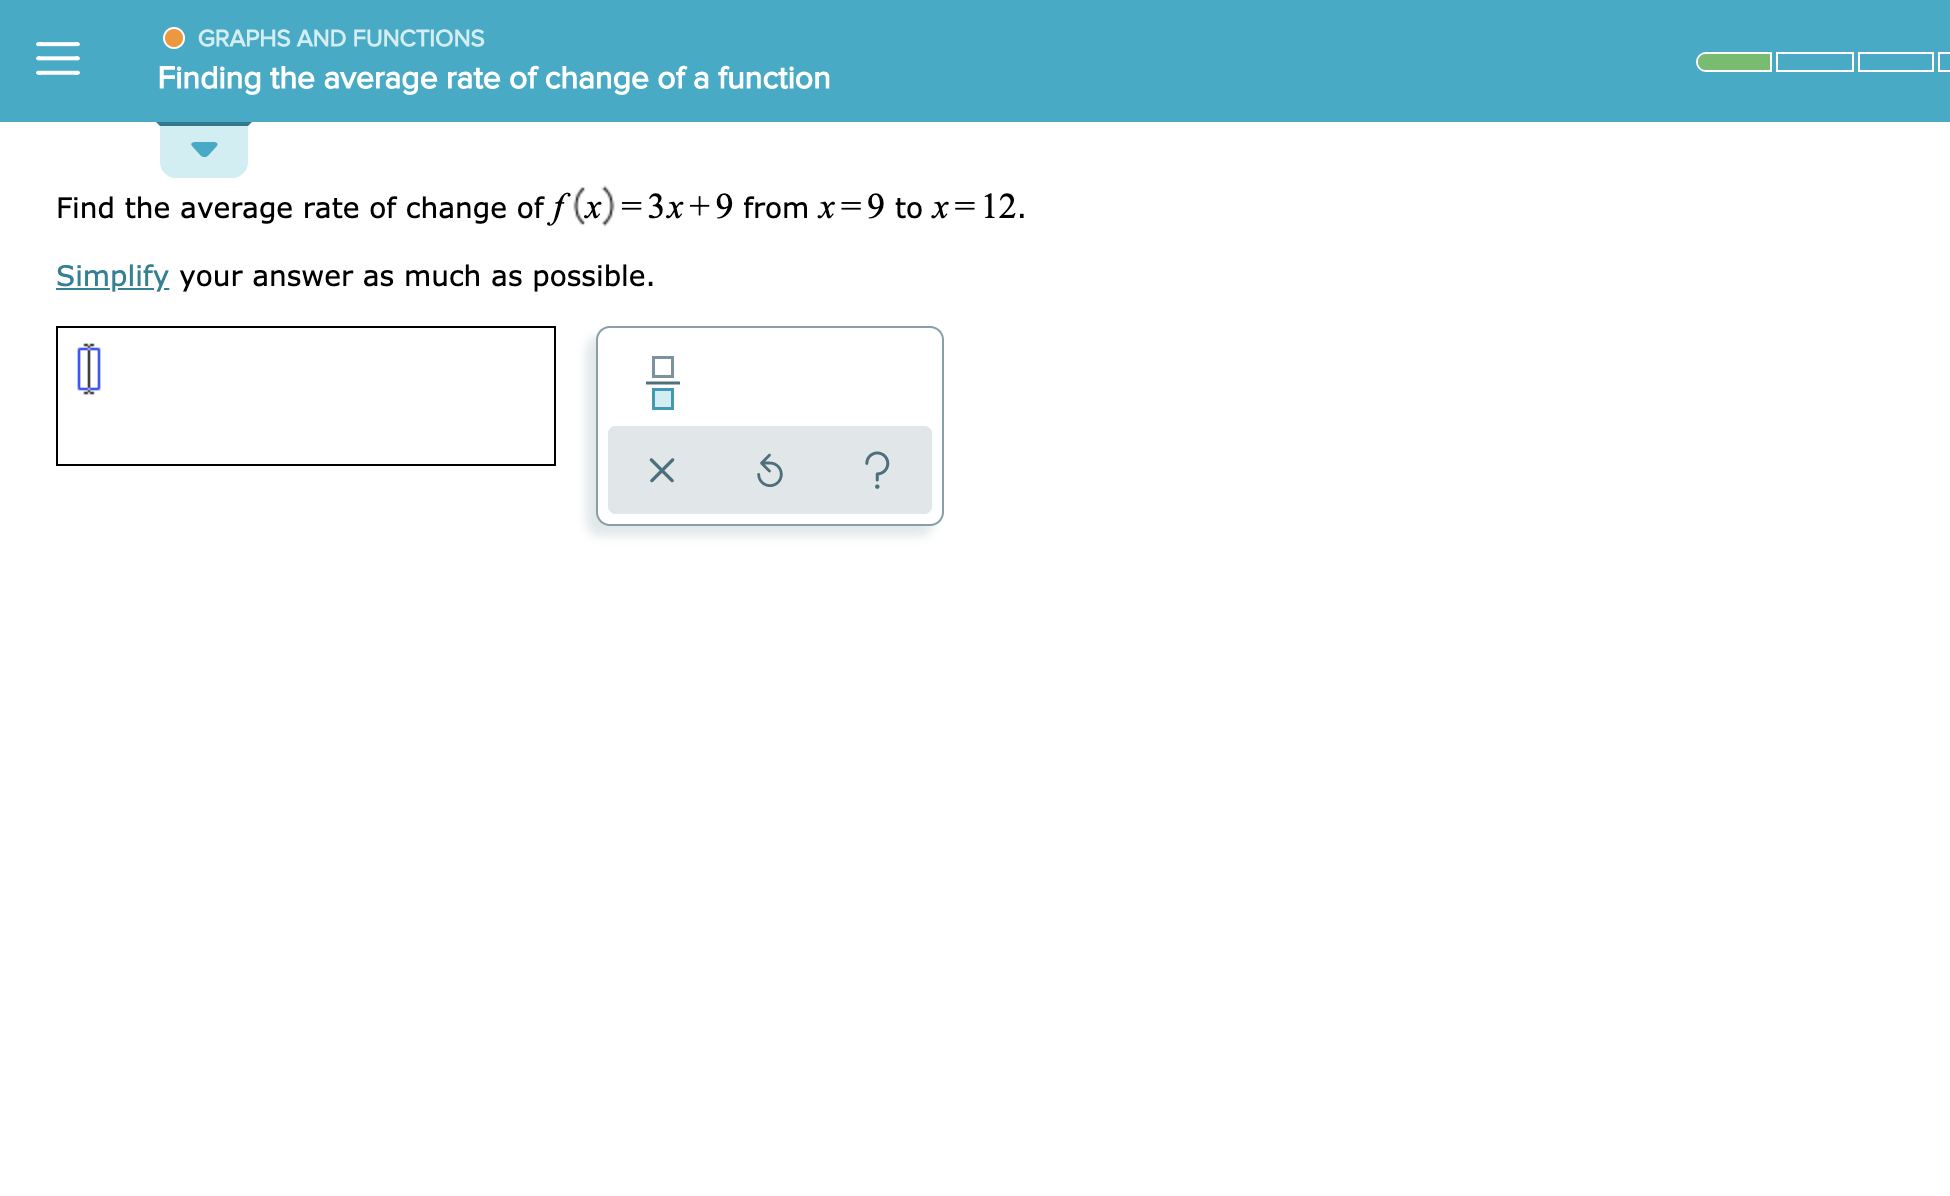 GRAPHS AND FUNCTIONS Finding the average rate of change of a function Find the average rate of change of f(x)=3x+9 from x=9 to x= 12 Simplify your answer as much as possible. 미미 x